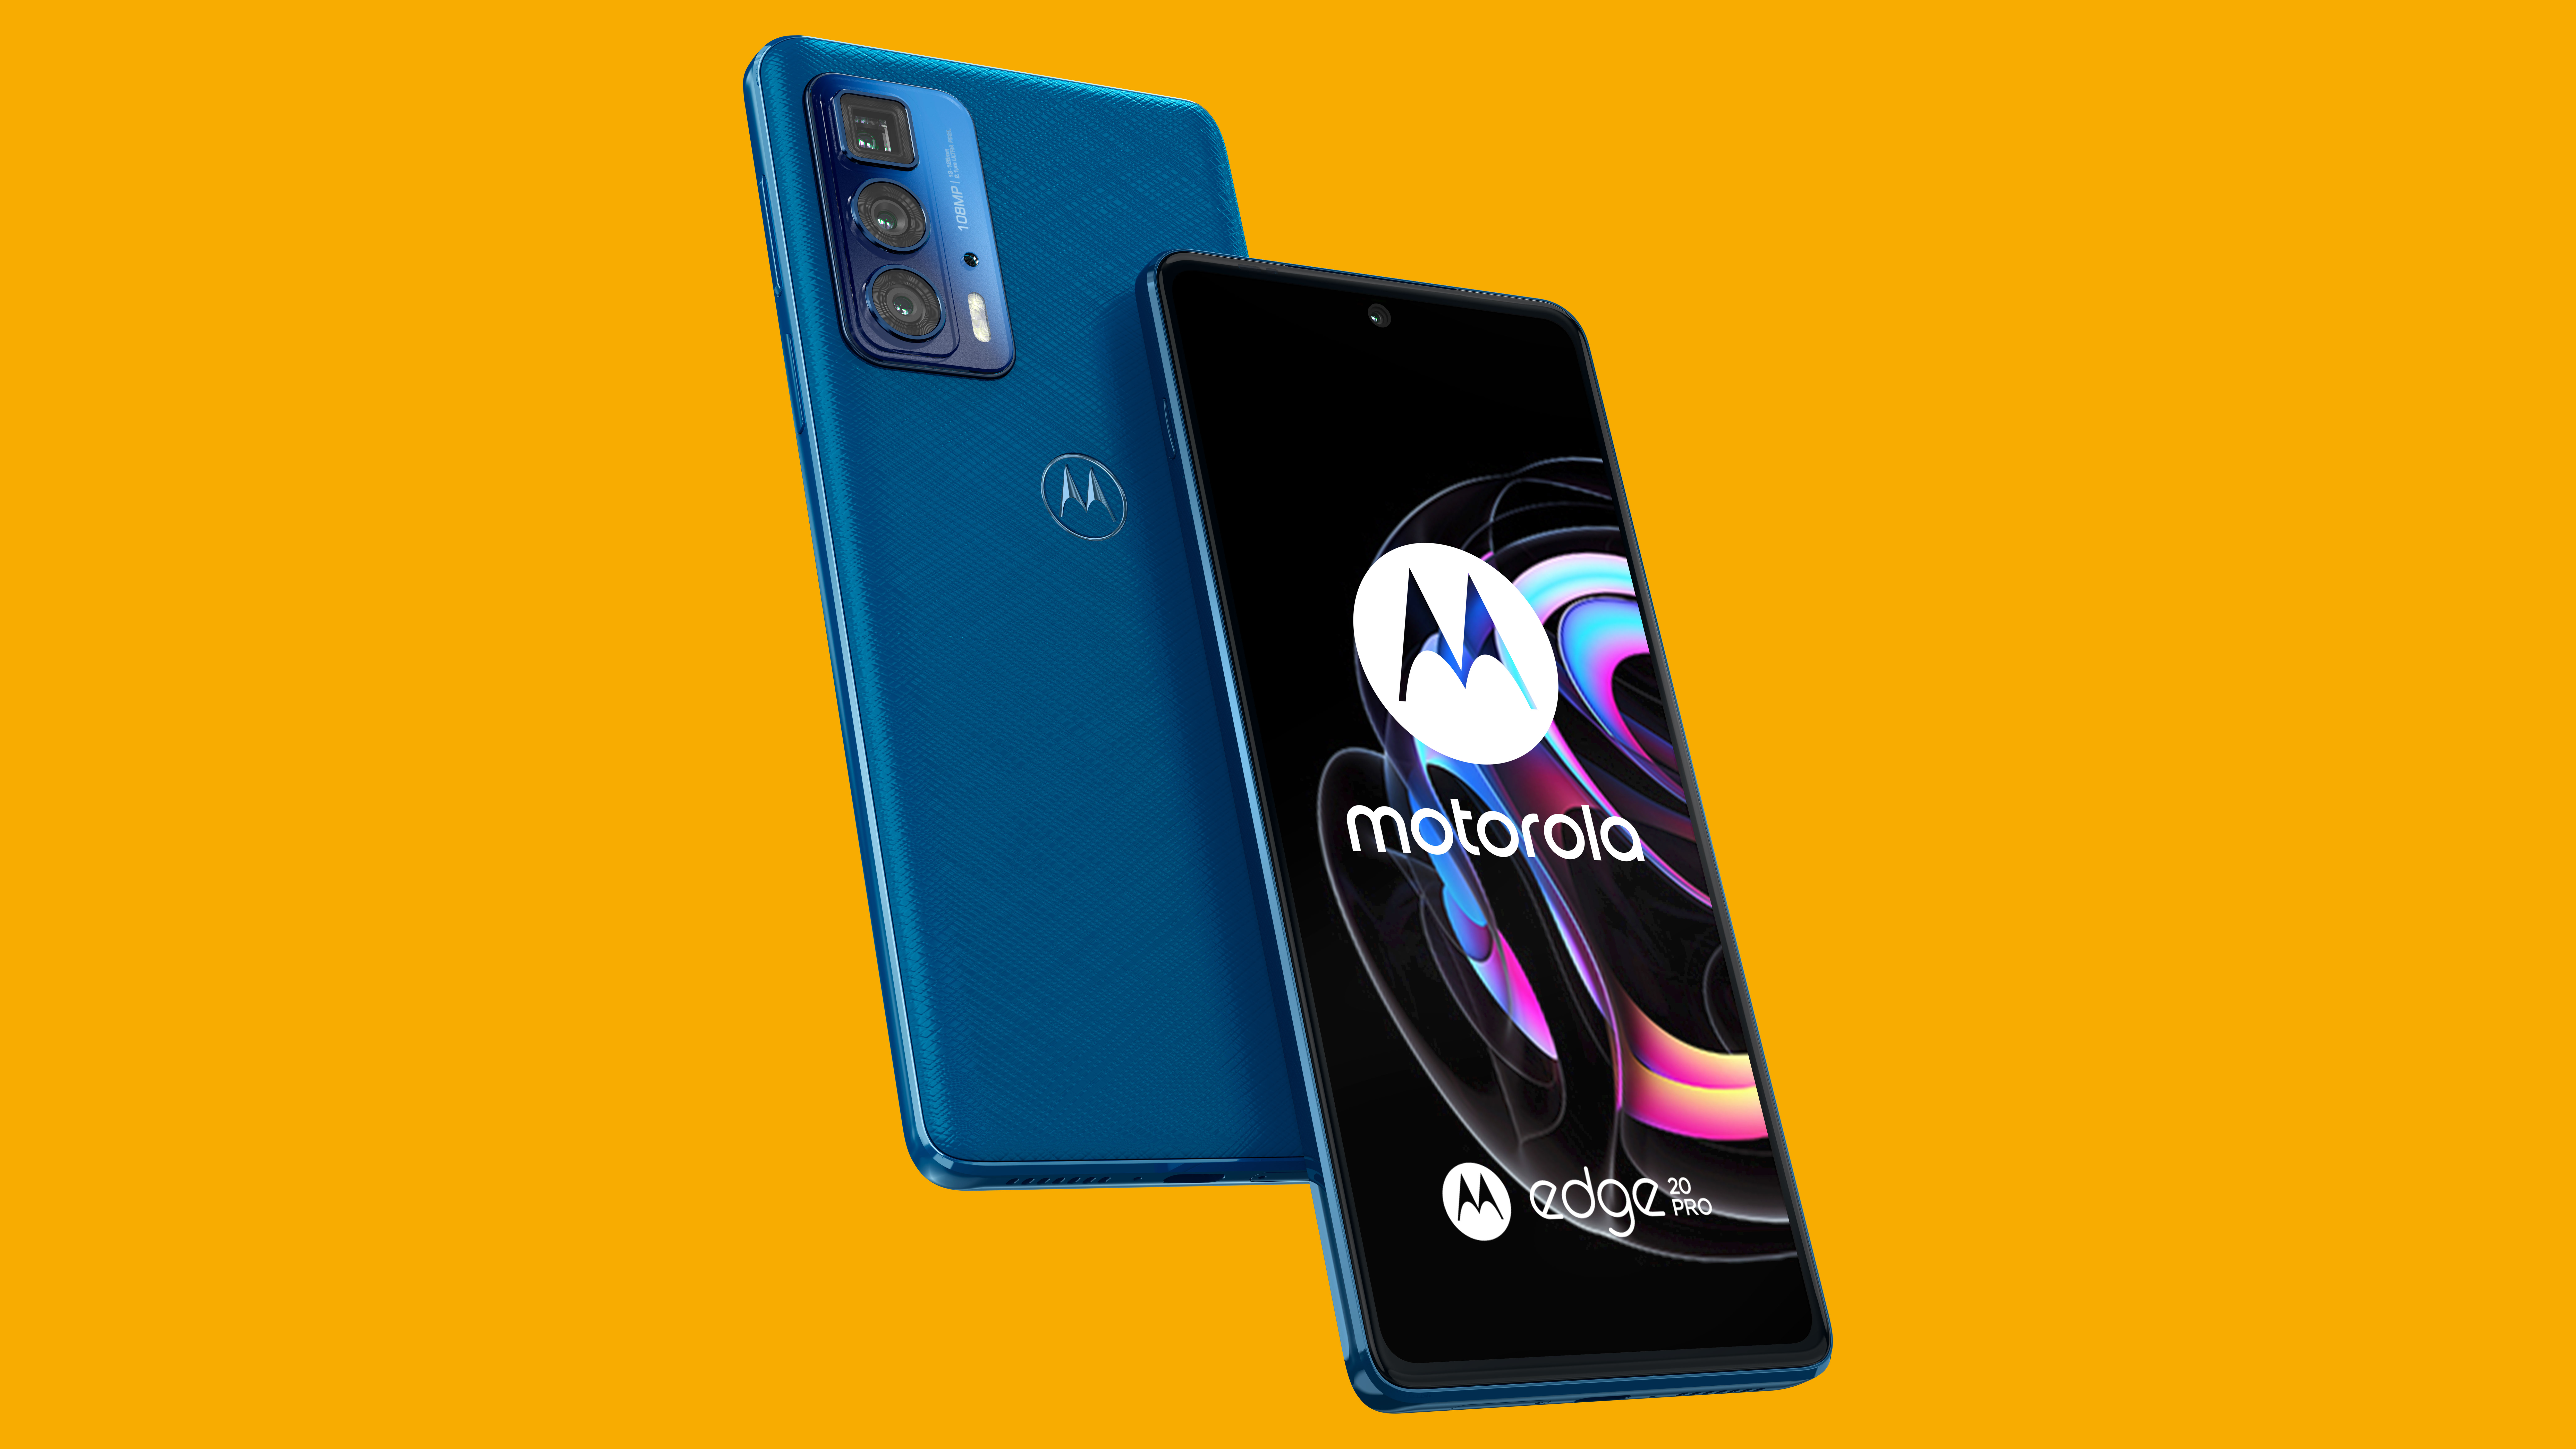 The Motorola Edge 20 Pro in its blue shade showing the front and back of the phone